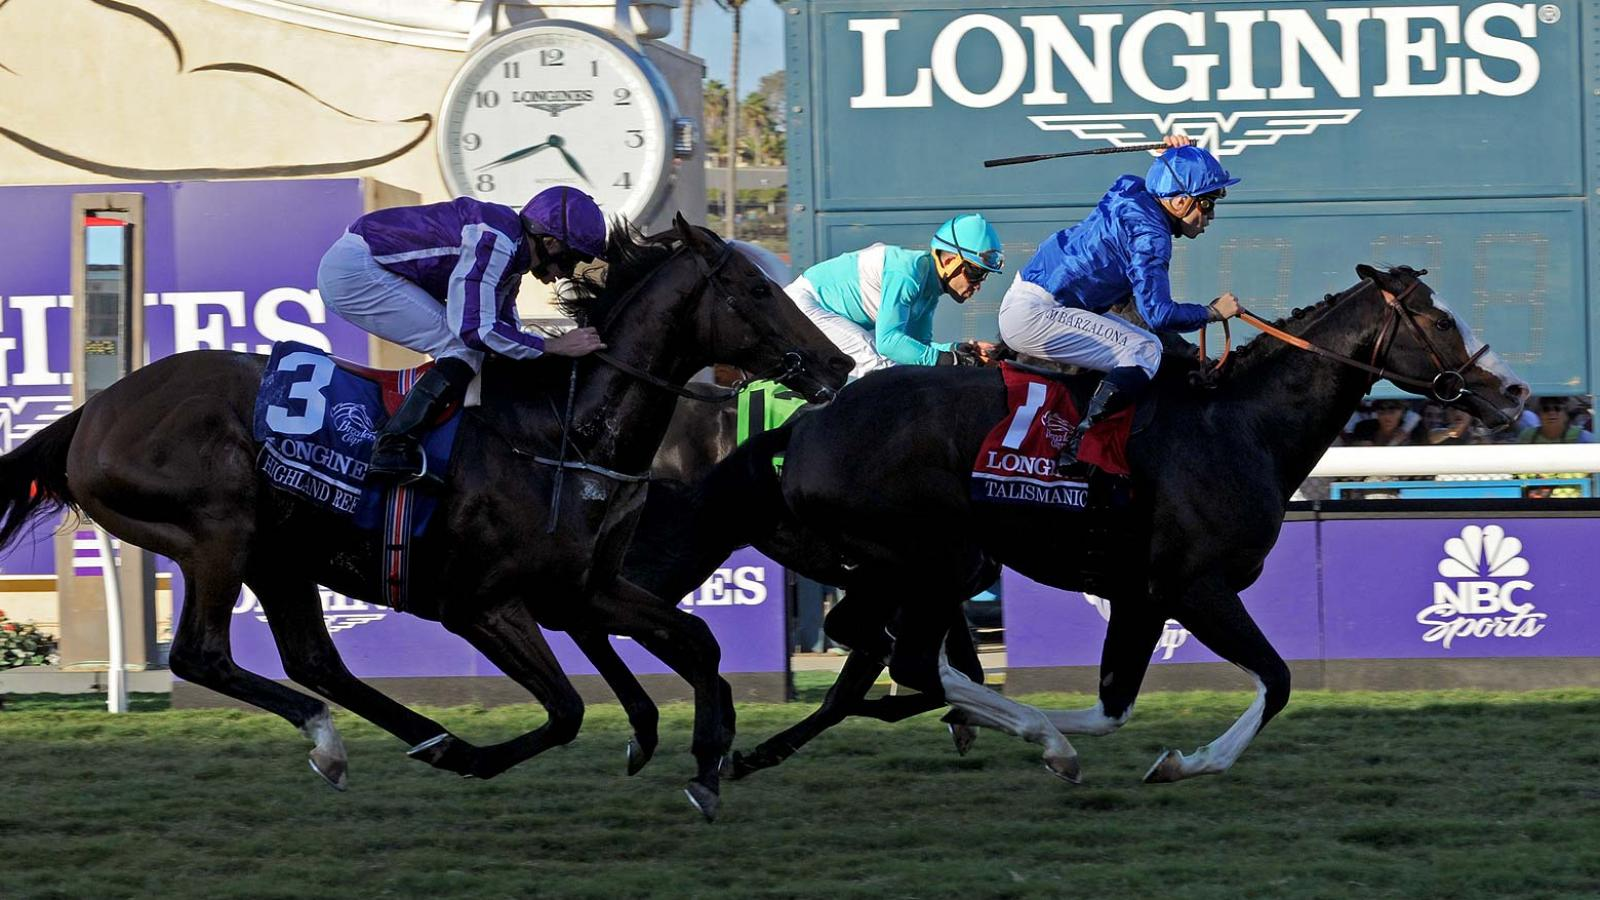 Swiss Watch Brand Longines Times 2017 Breeders Cup World